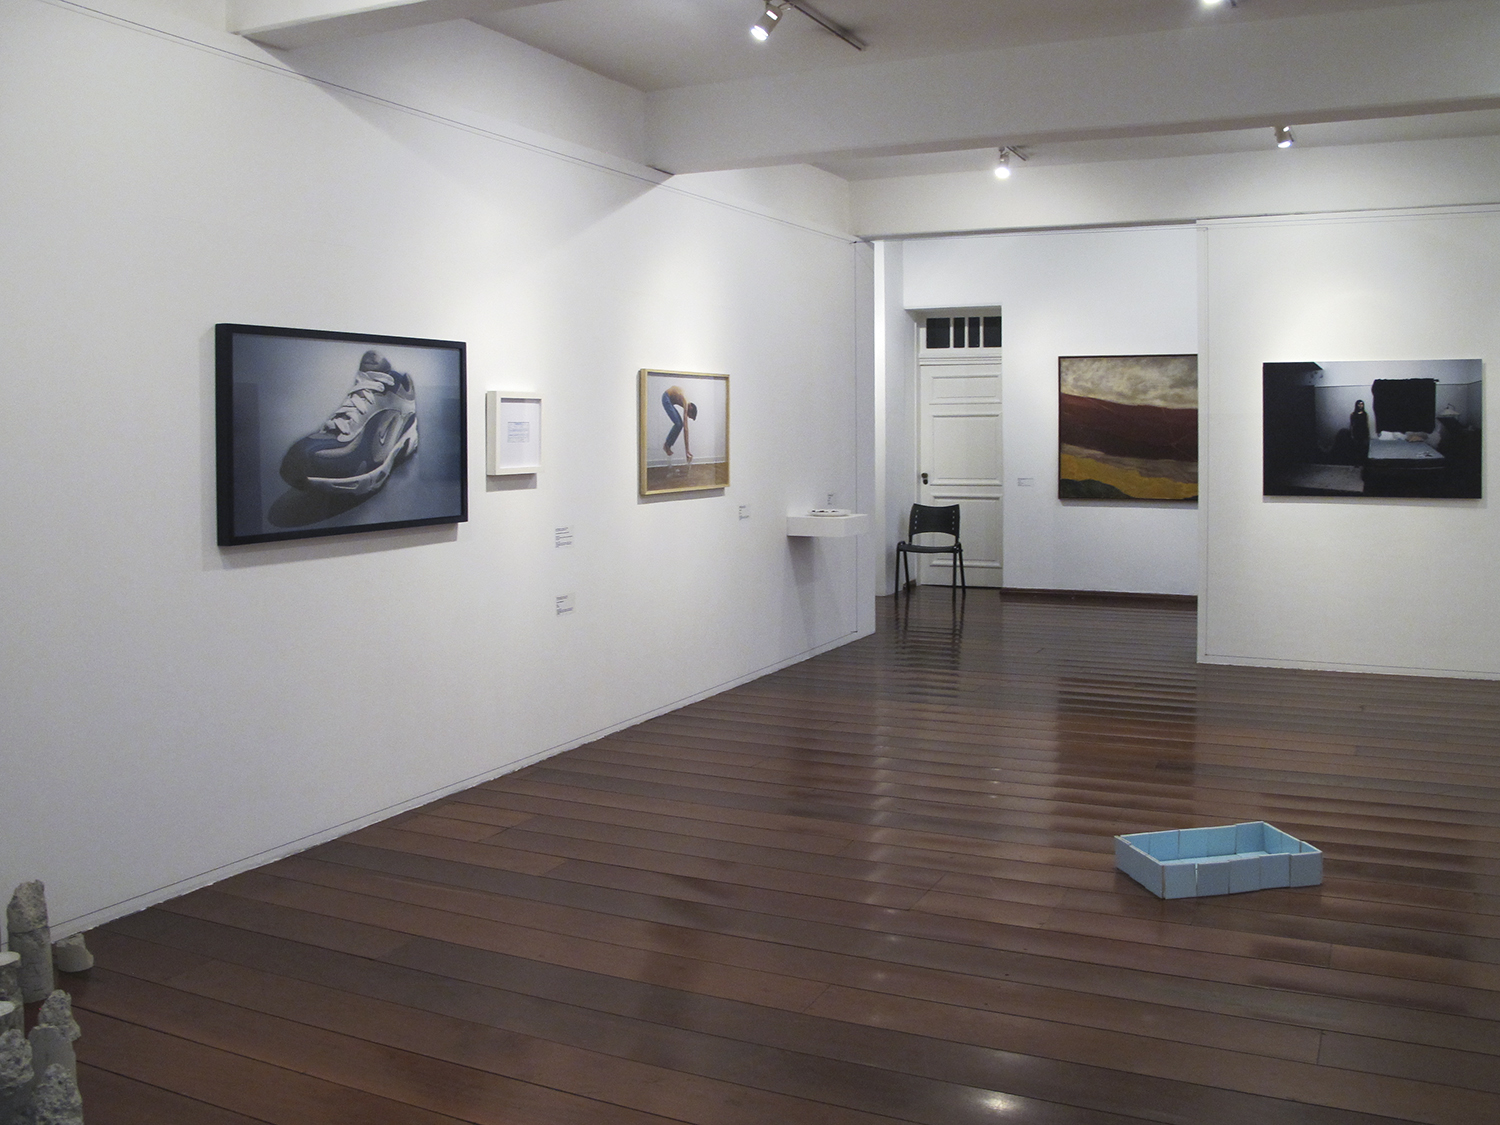 MARP and the Body of Art  : group show at MARP – Ribeirão Preto   Museum of Art  , August 2011.   Work on show: Nike: R$ 35,00 (What Seduces You series) (MARP Collection)